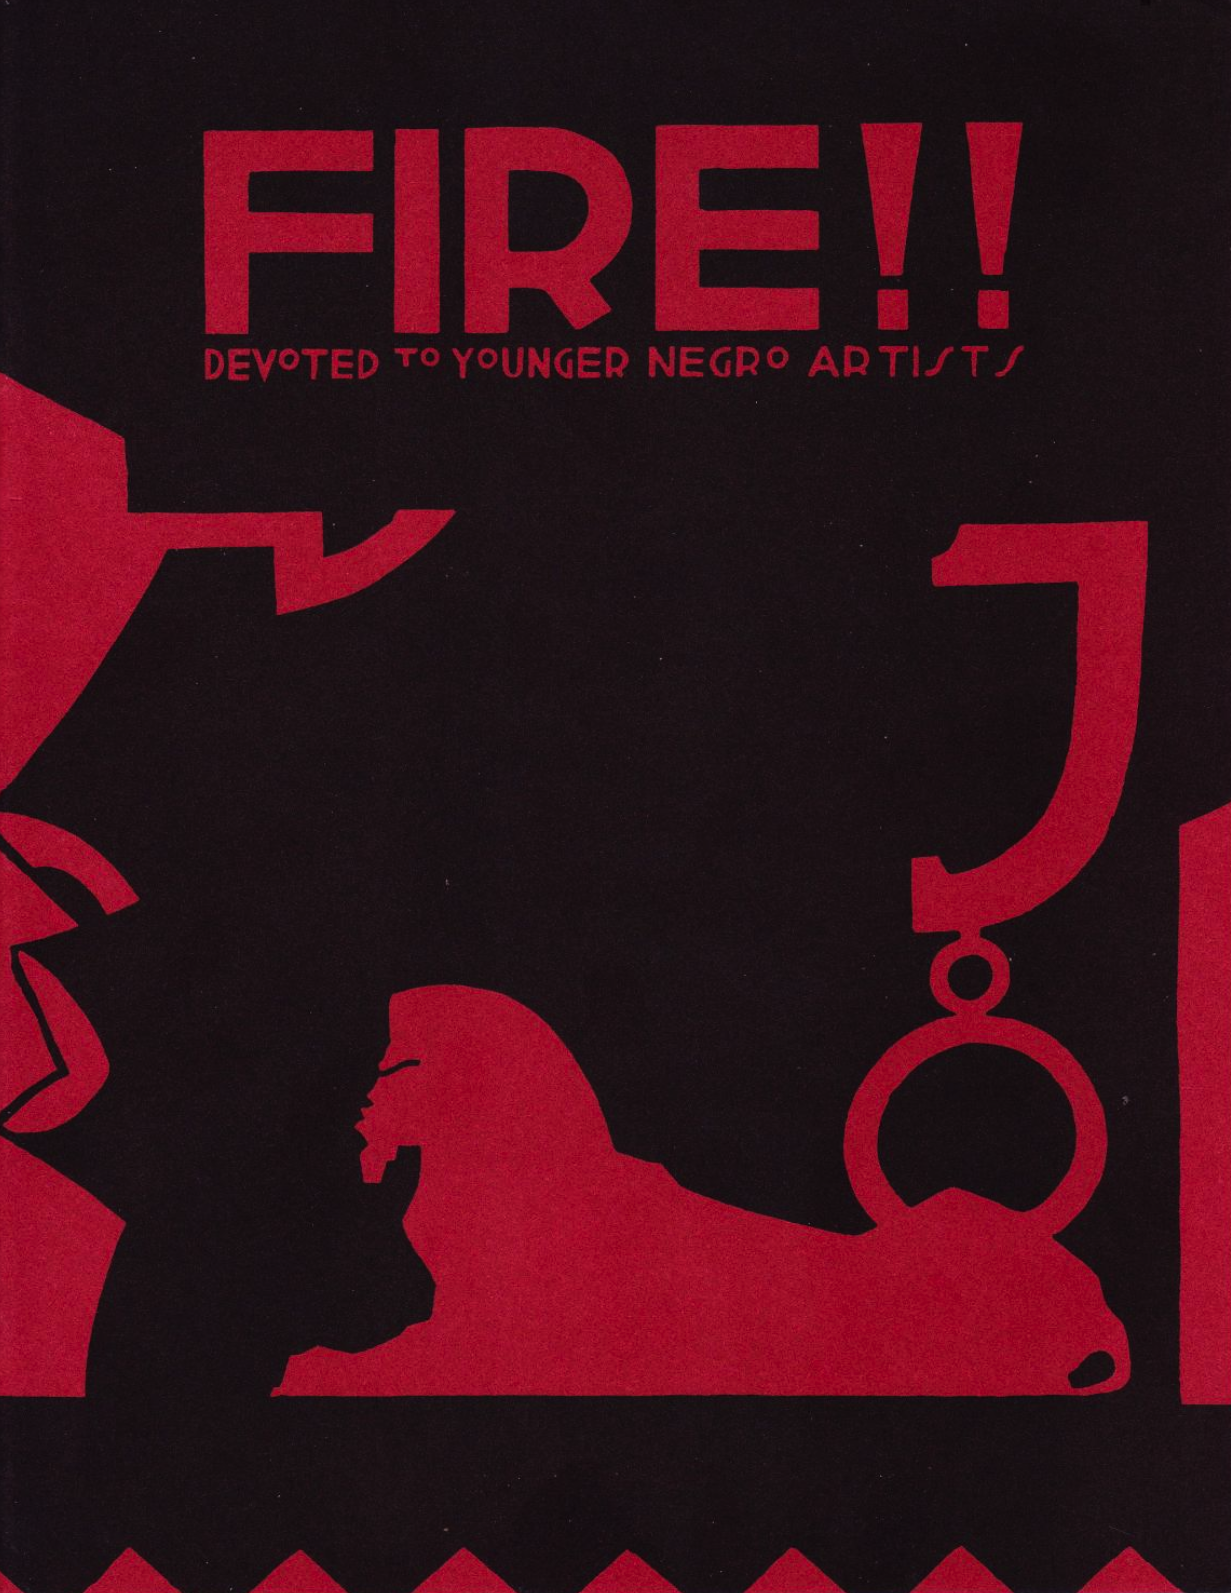 Back Cover of Fire!!, Courtesy of POC Zine Project